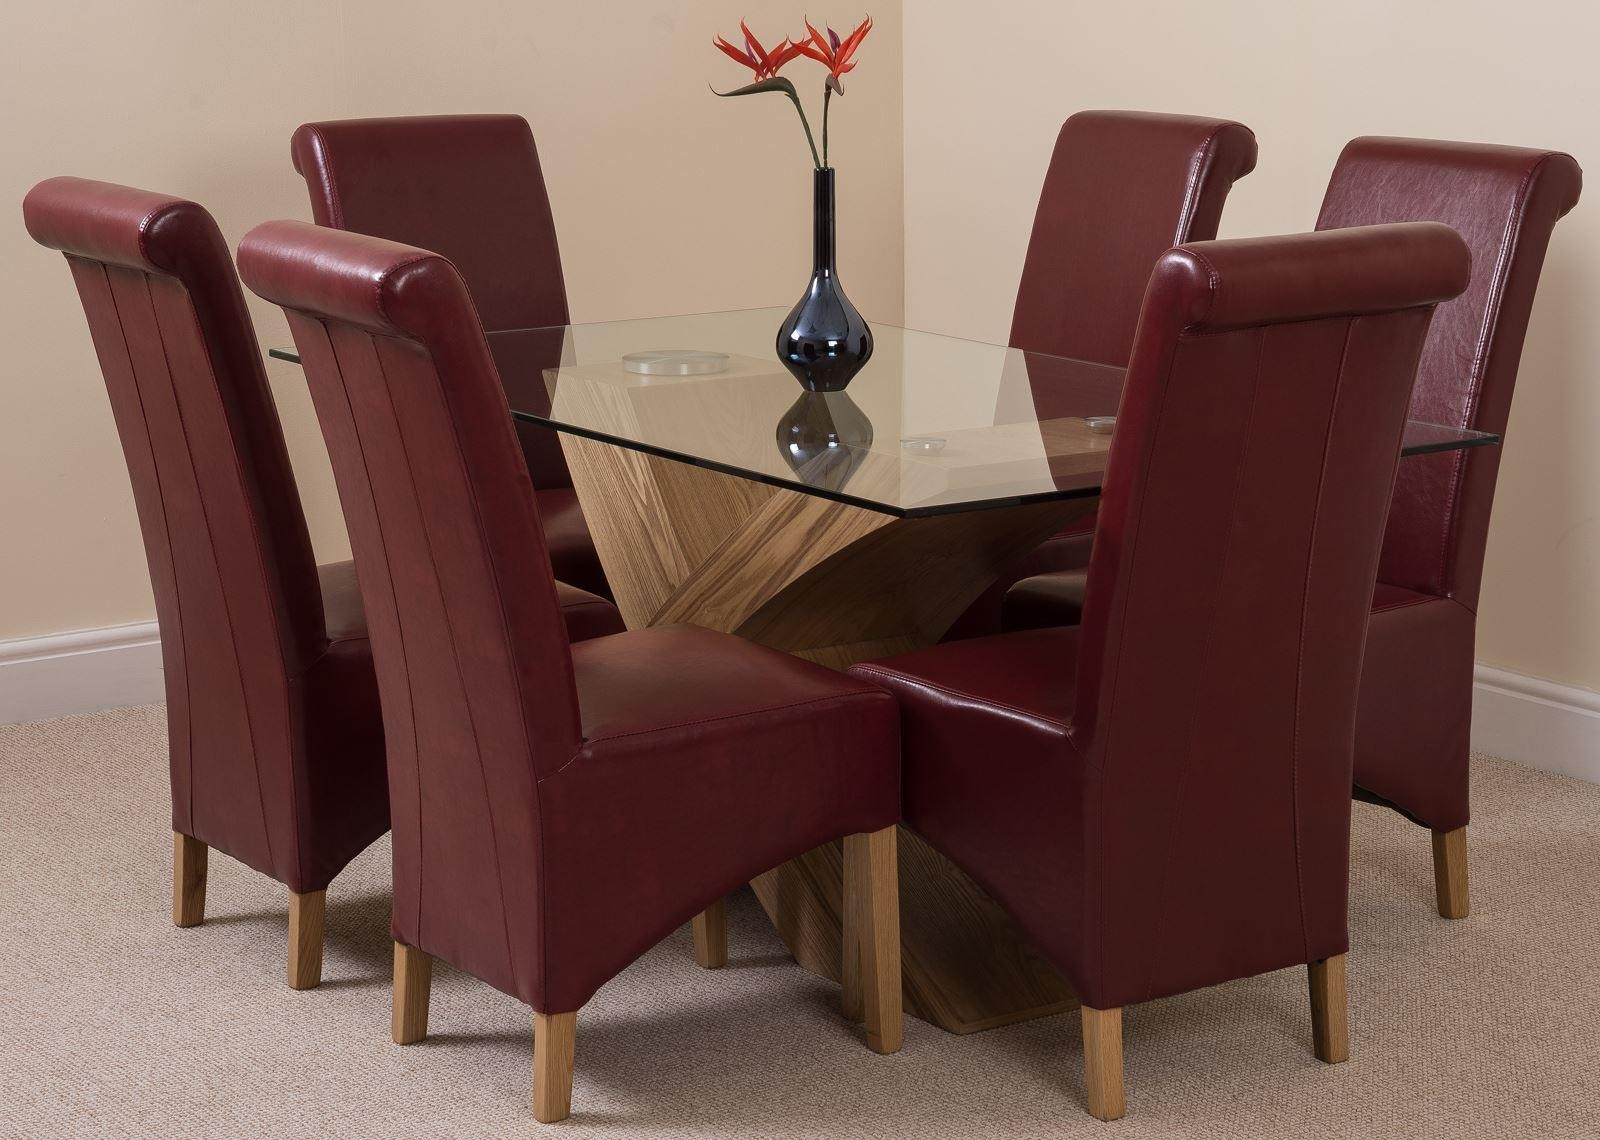 Valencia Oak 160cm Wood and Glass Dining Table with 6 Montana Dining Chairs [Burgundy Leather]